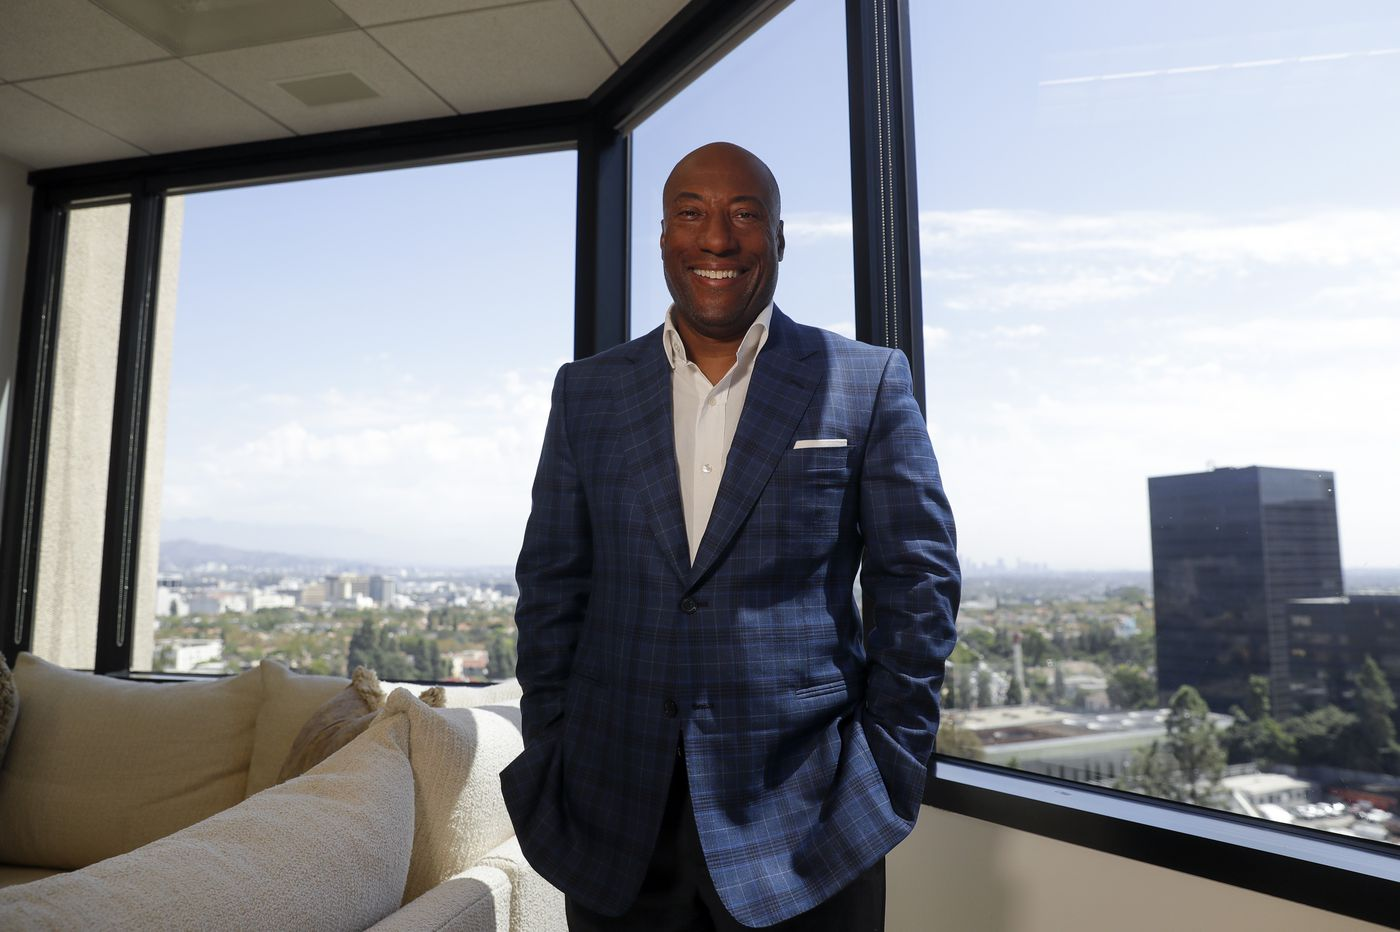 'Break up' Comcast, says congressman as cable giant fights Byron Allen over alleged discrimination